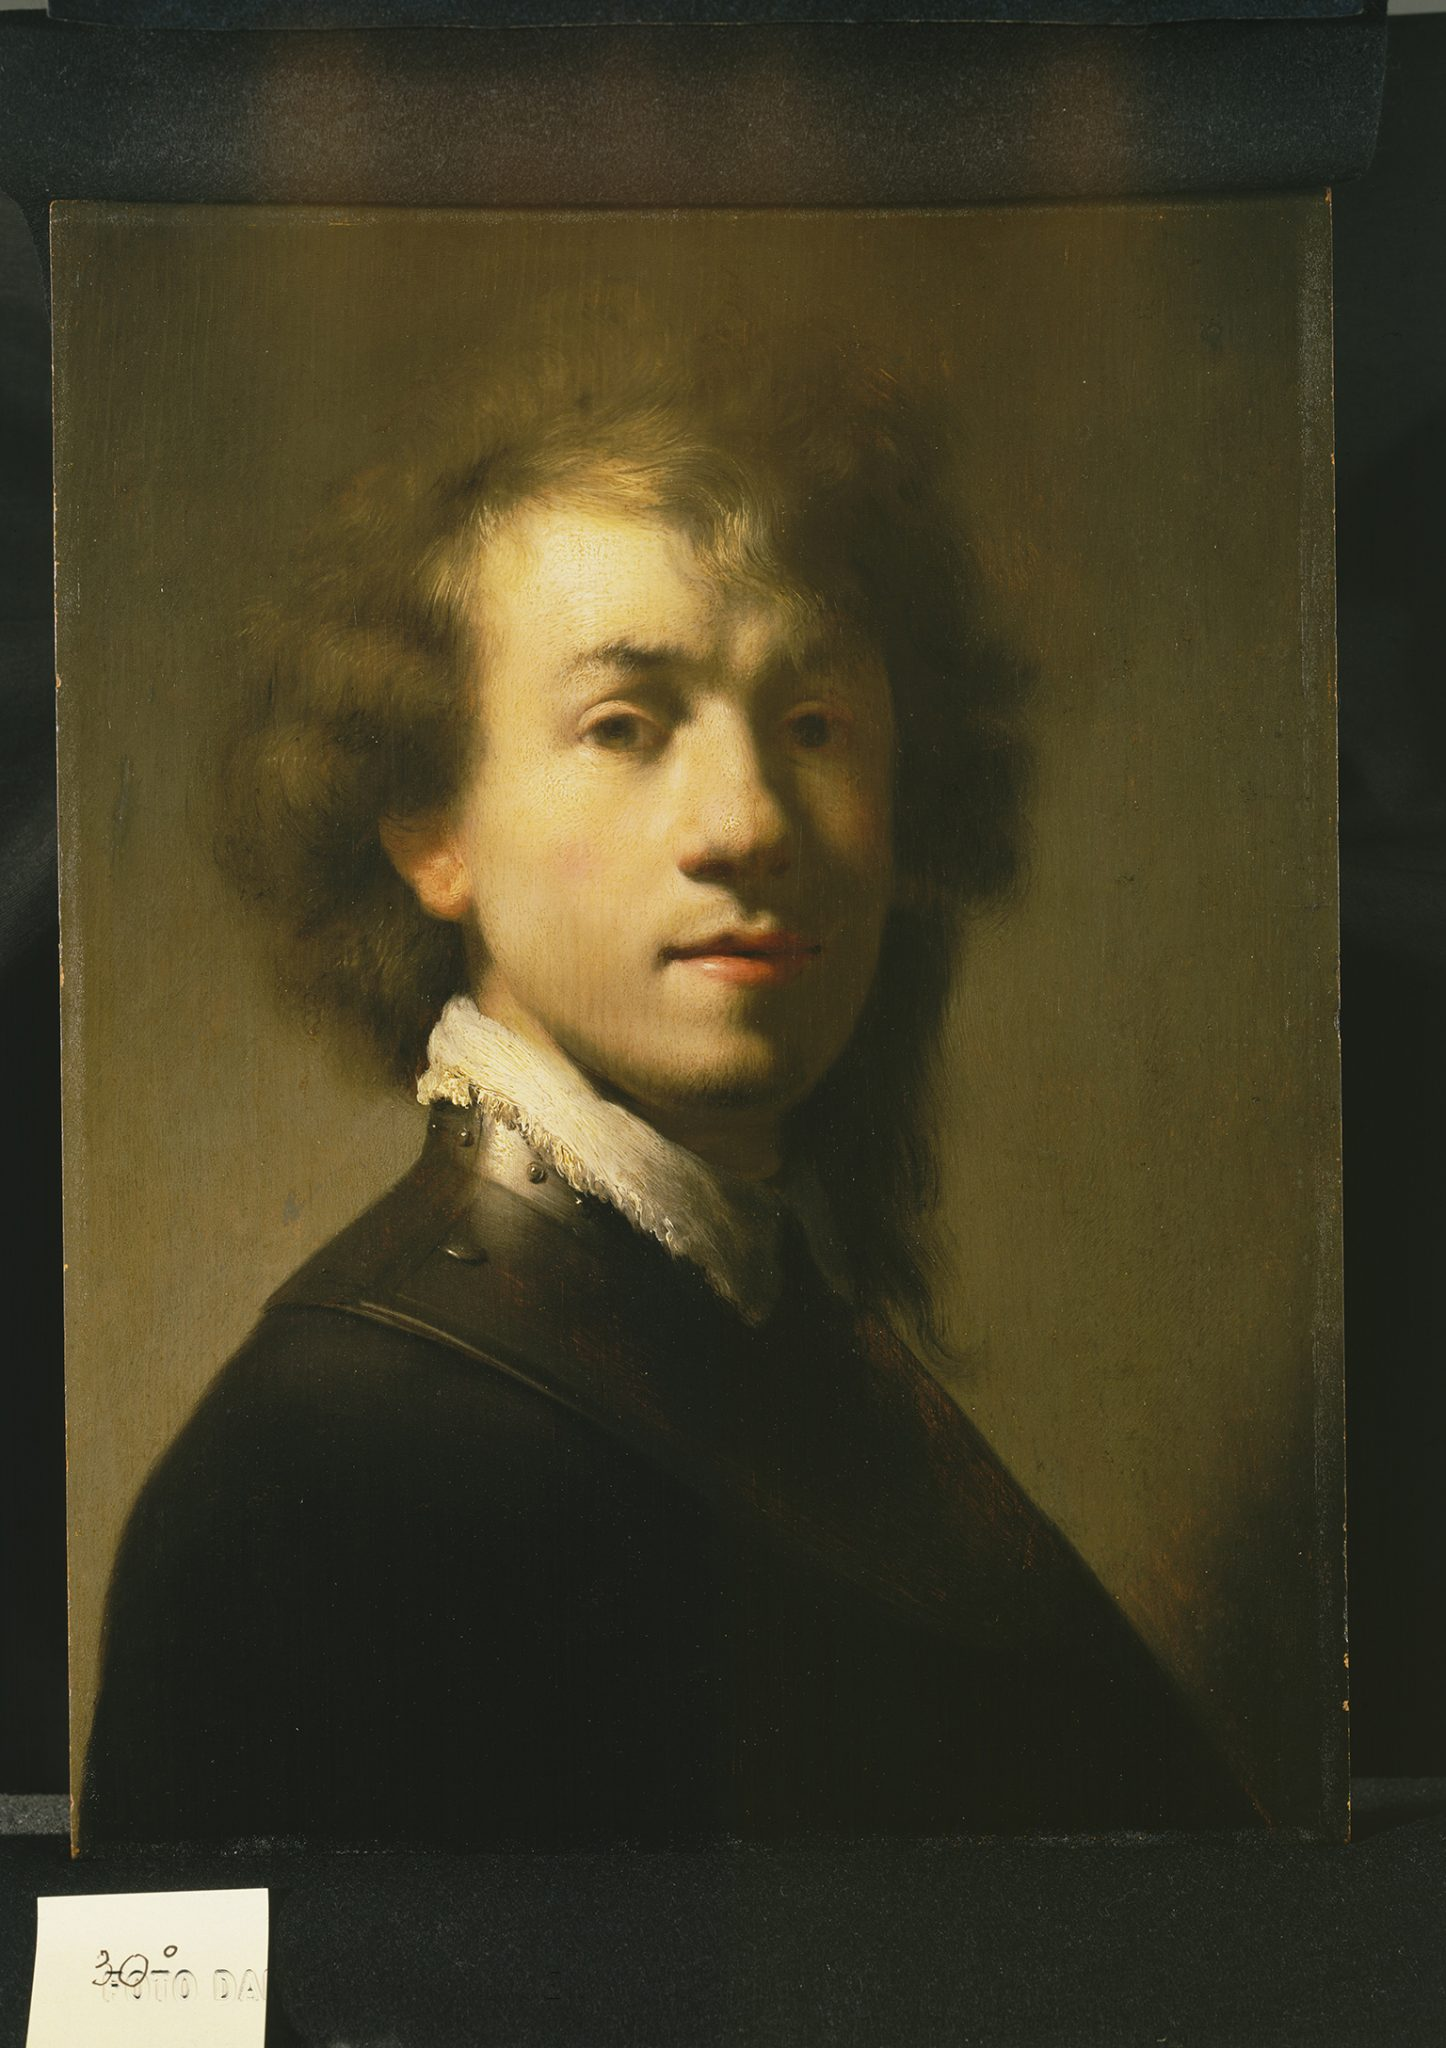 Rembrandt in the Mauritshuis: Work in Progress - Journal of ...